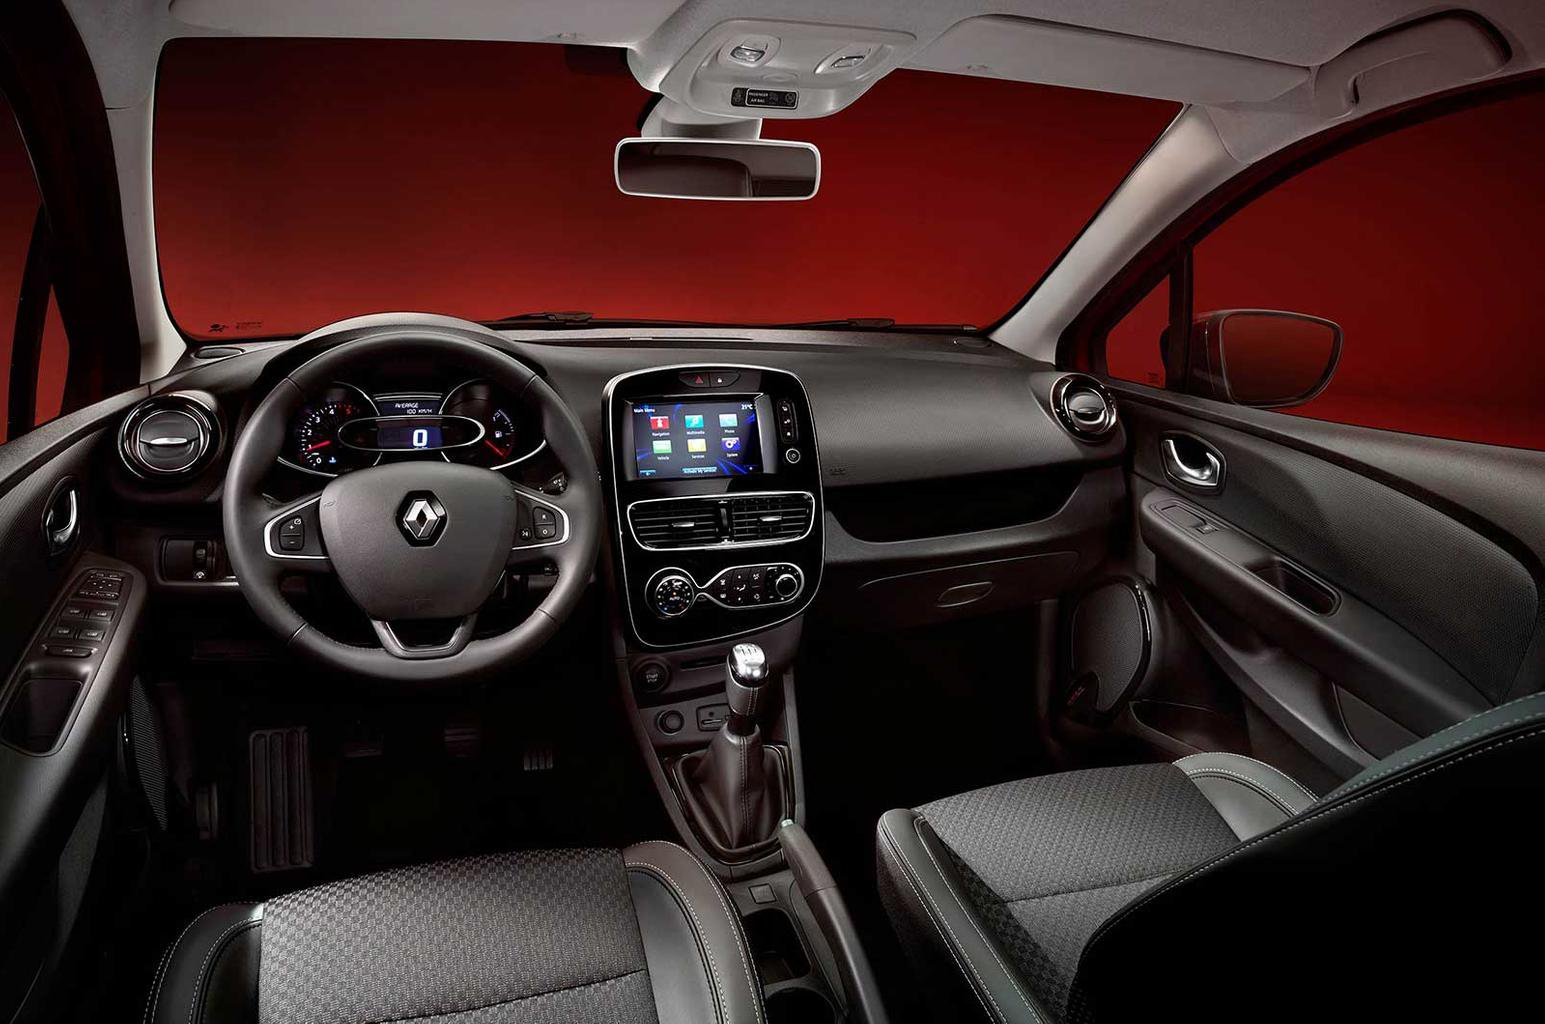 Facelifted Renault Clio revealed